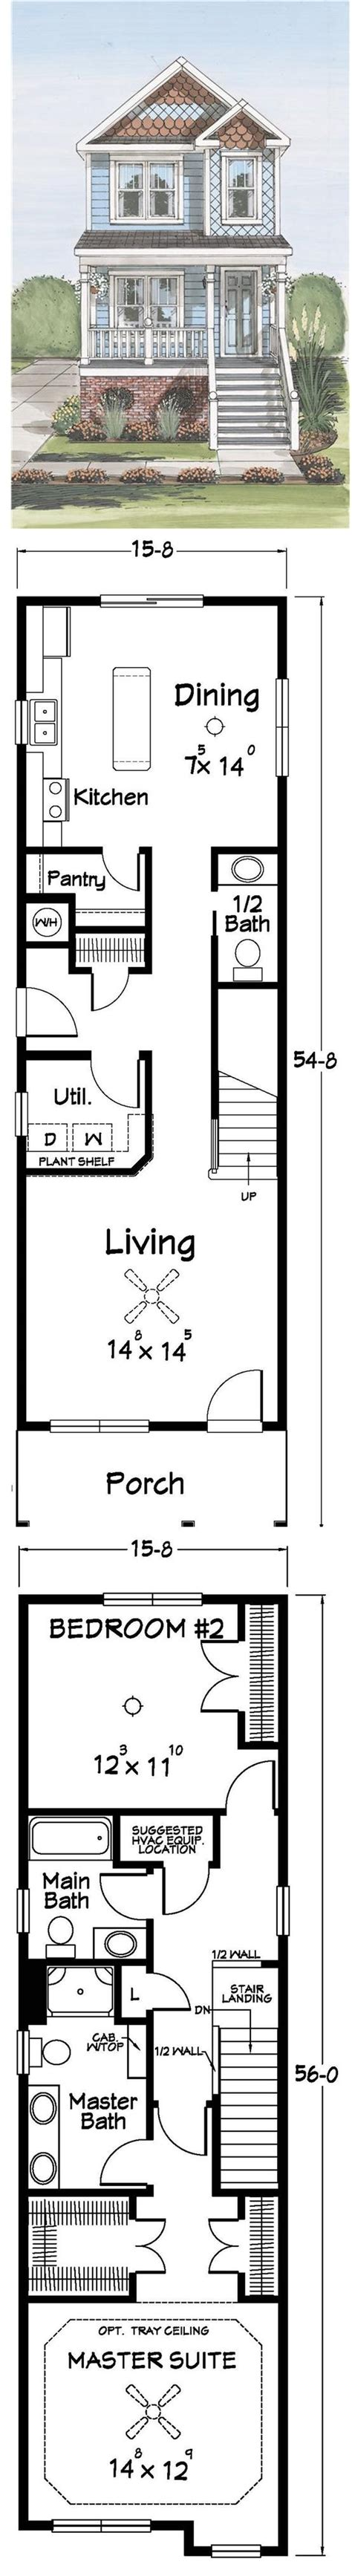 house plans for small lots narrow house plans woodworking projects plans